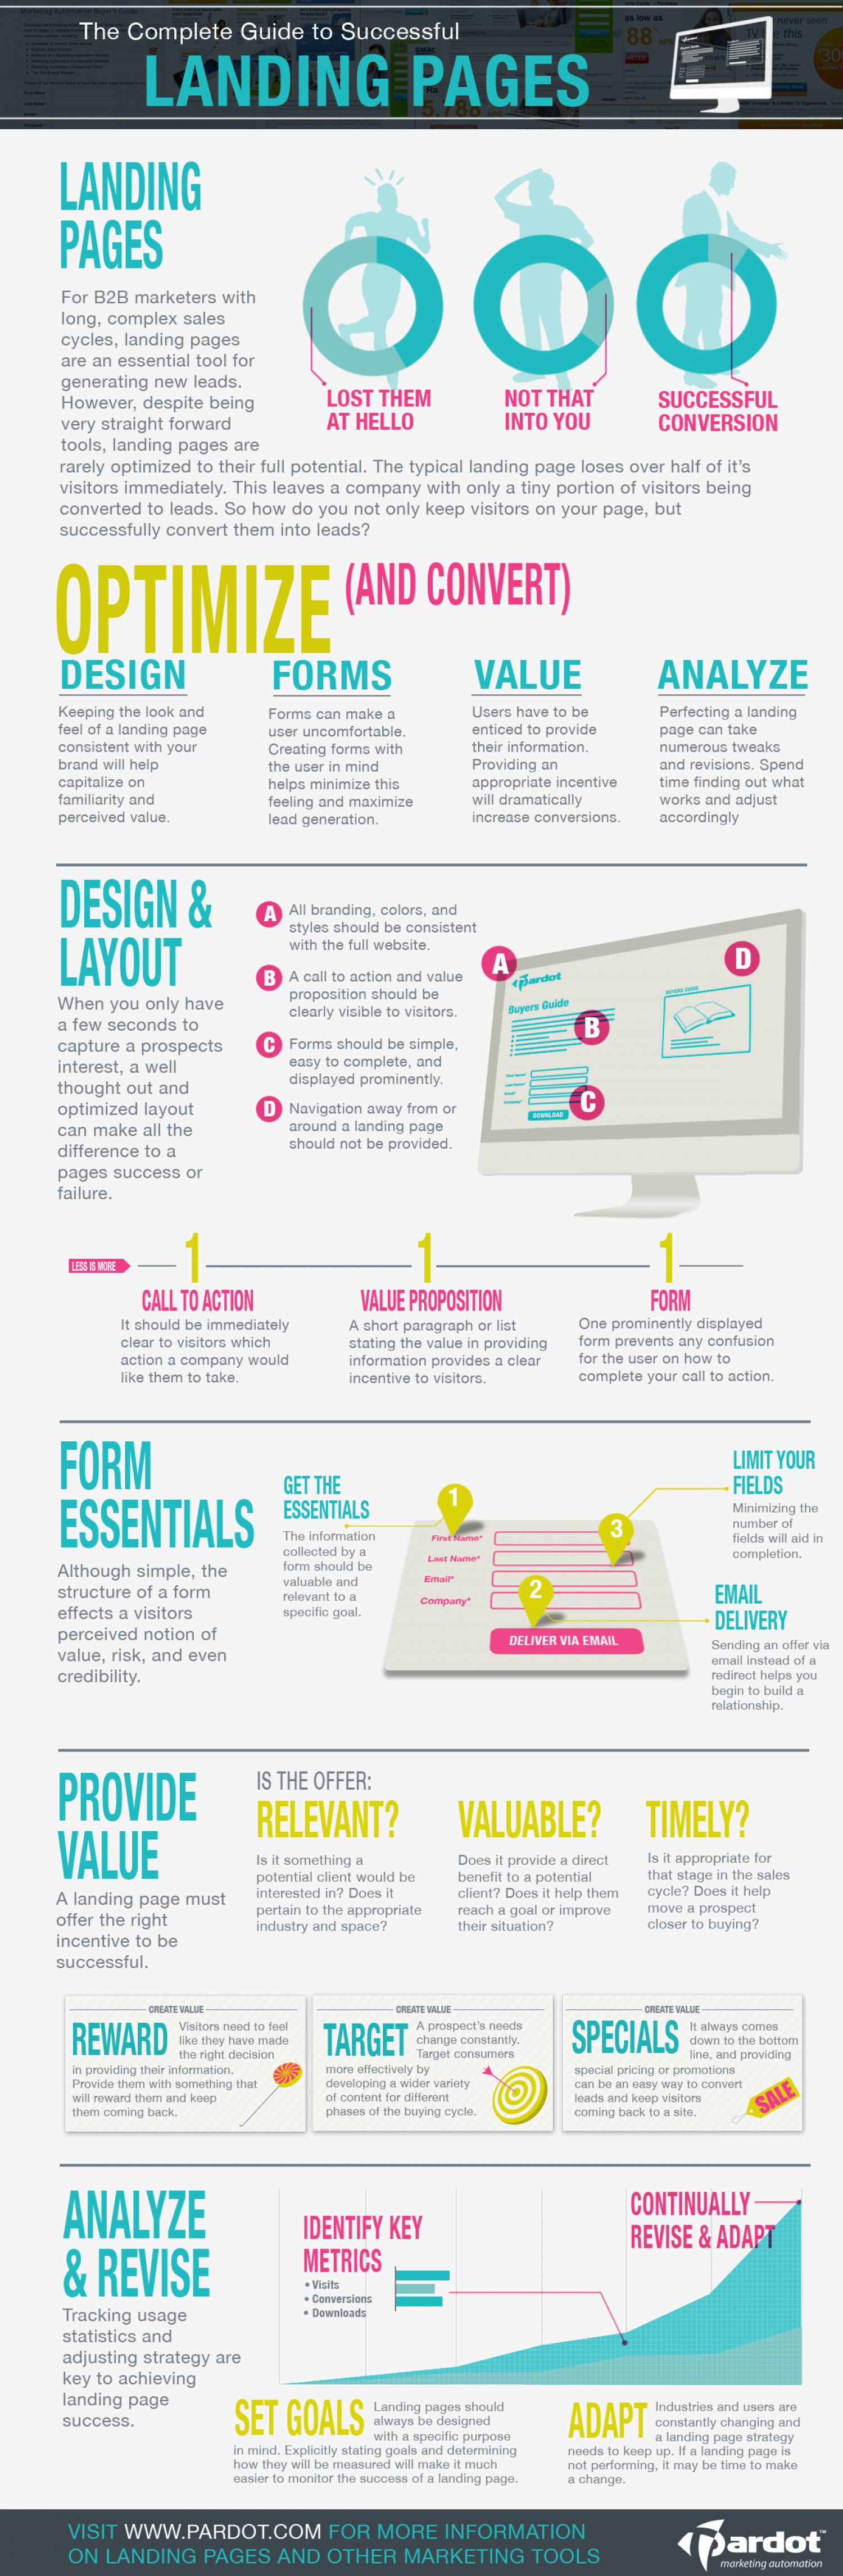 Complete Guide to Successful Landing Pages Infographic